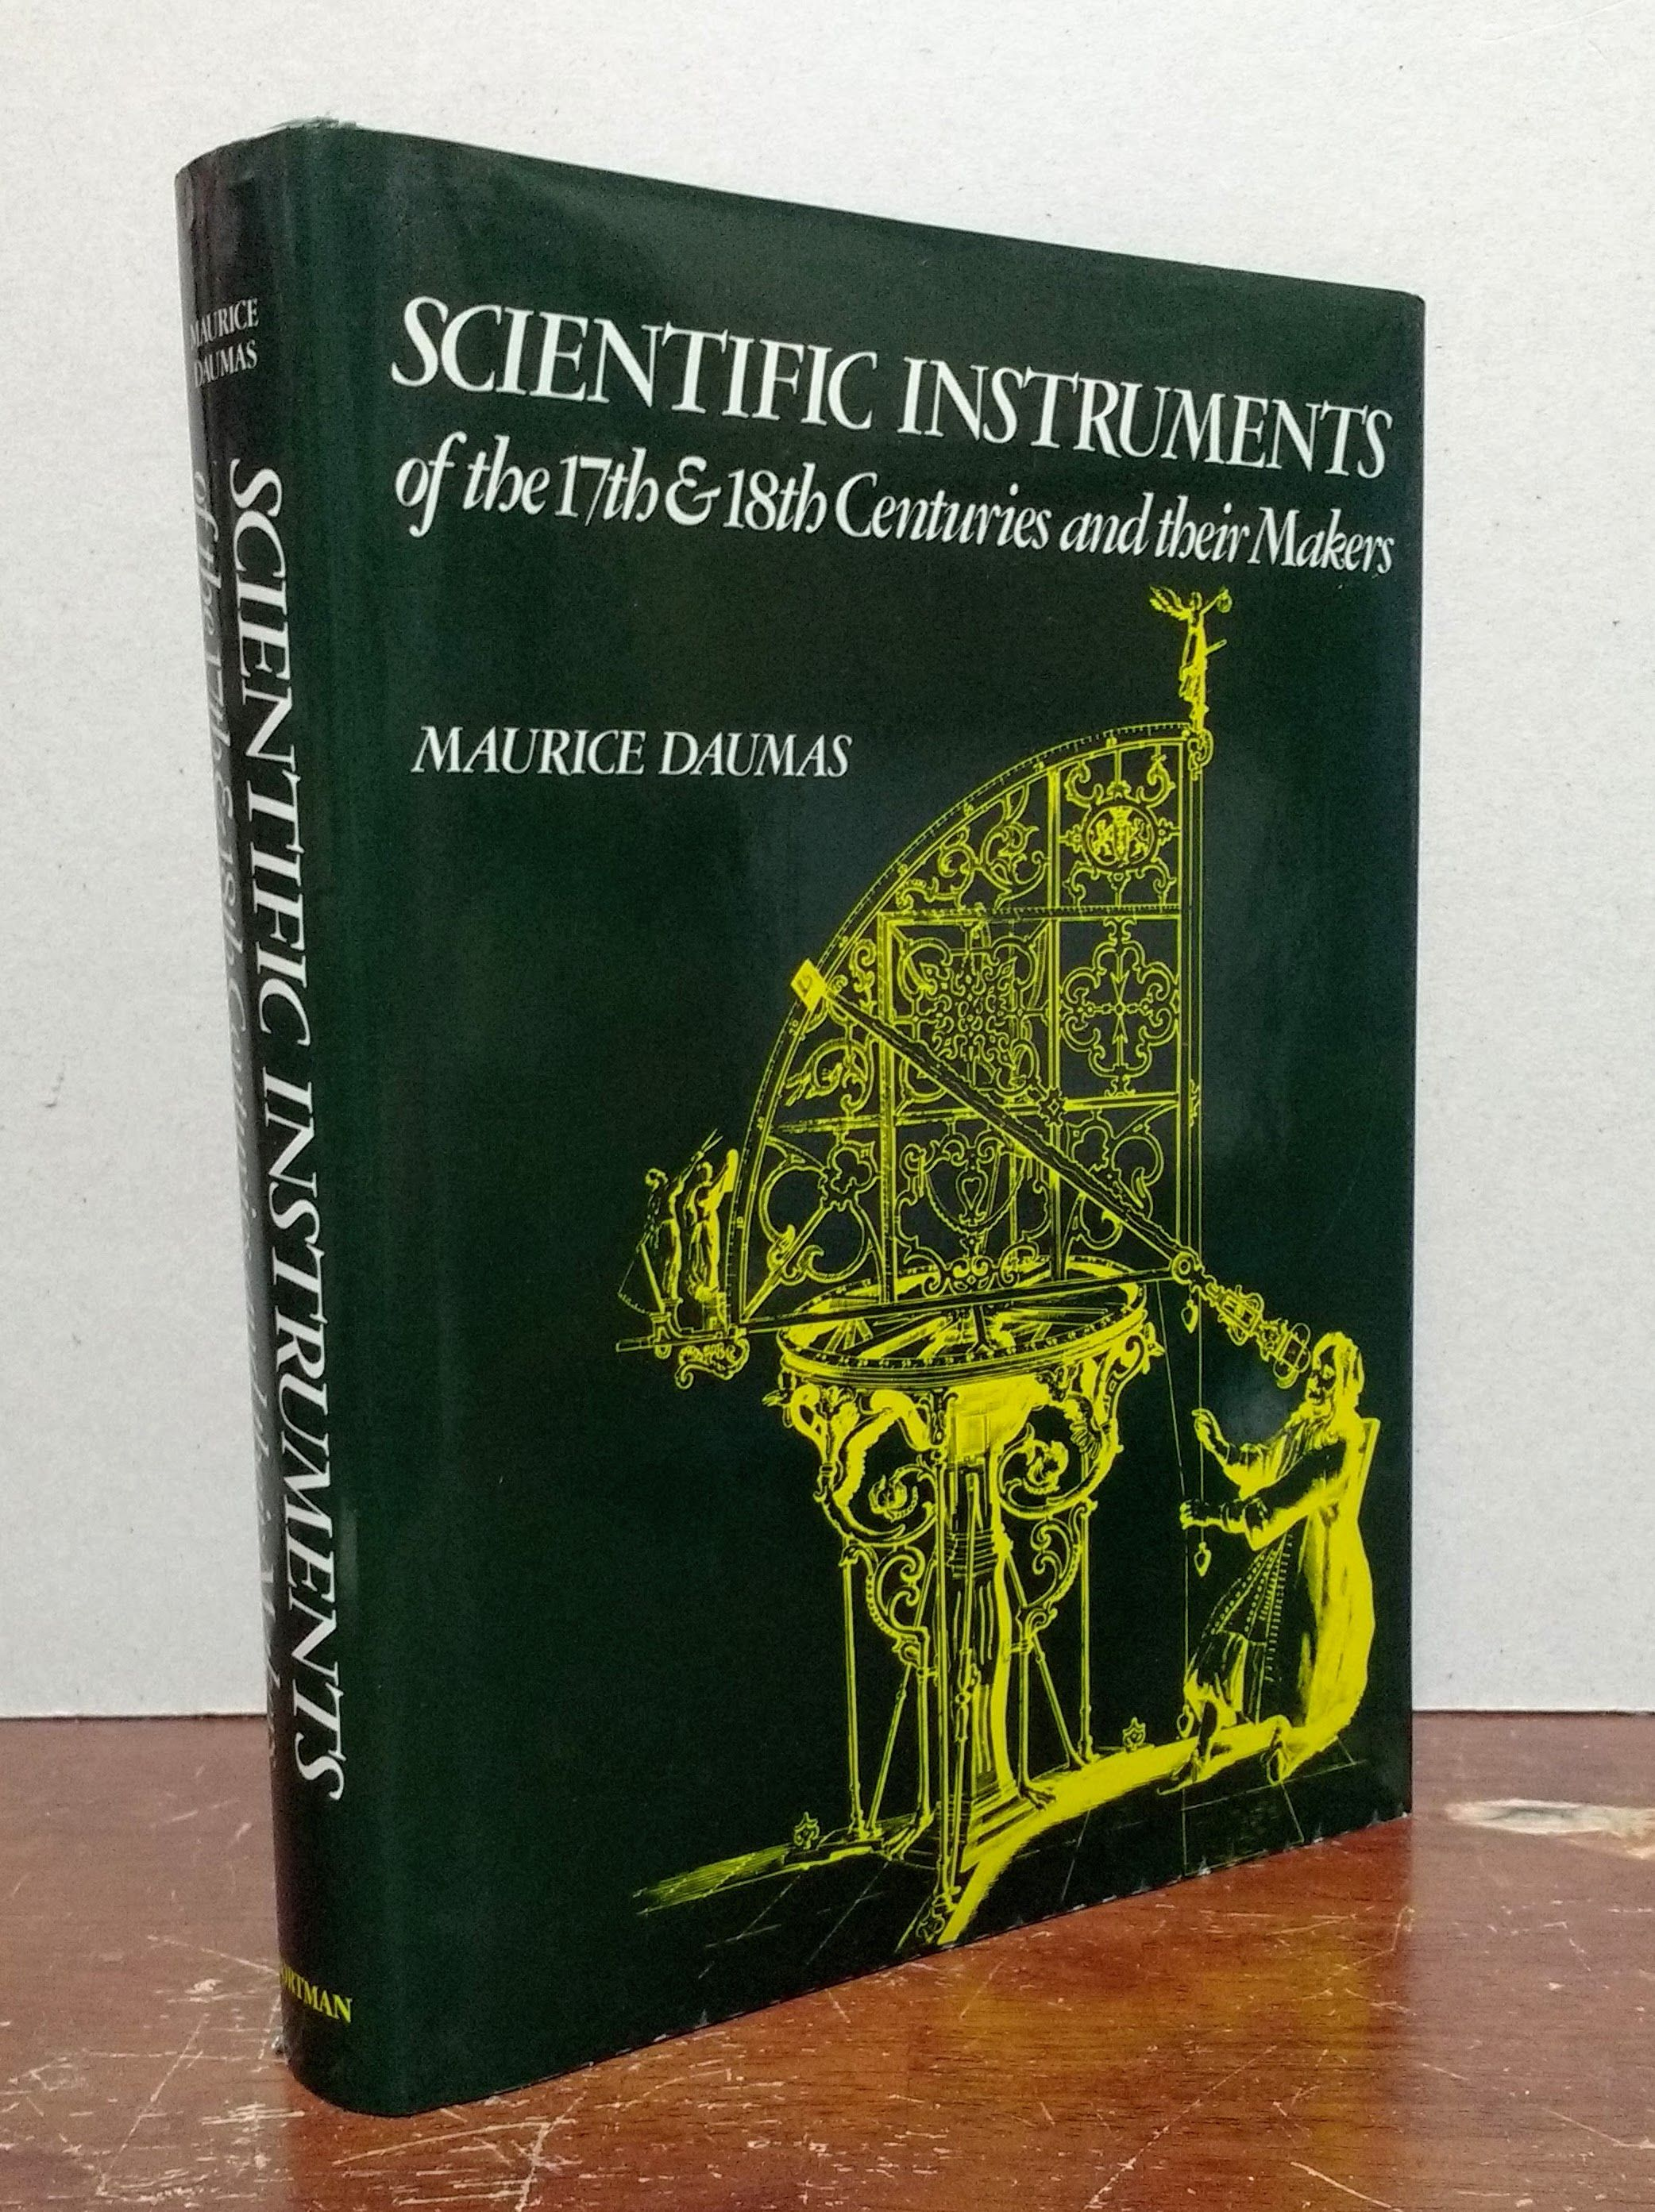 Scientific Instruments of the 17th and 18th Centuries and Their Makers, Daumas, Maurice